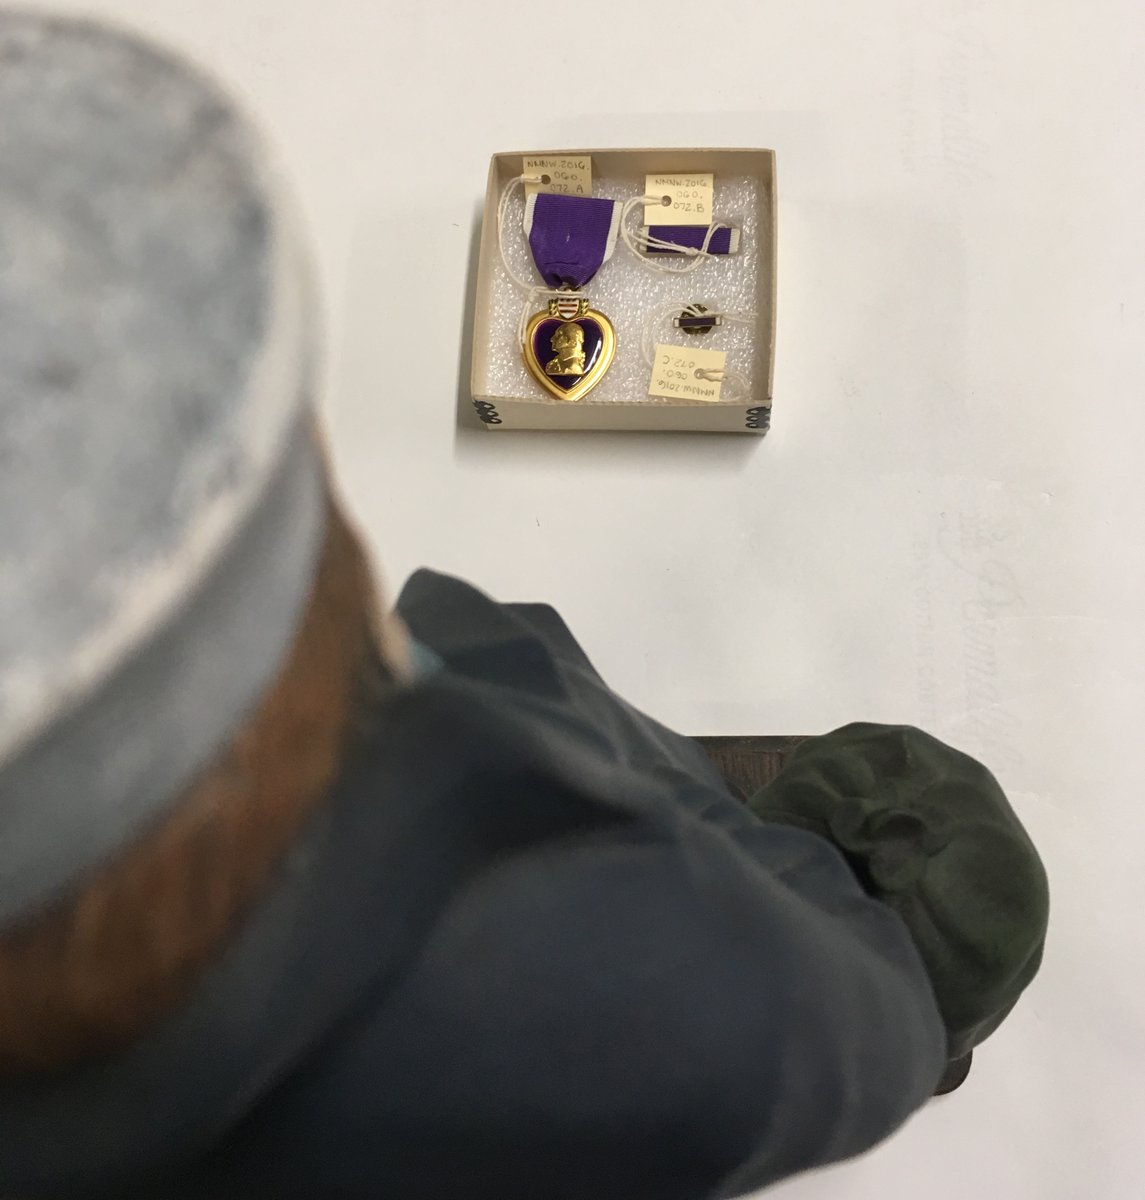 In honor of Purple Heart Day, Lone Sailor is taking a break from his usual silliness to admire a Purple Heart medal in our collection.  Learn more about the life of the #WWII sailor who earned this medal: https://www.facebook.com/watch/?v=632634100790502…   #PurpleHeartDay #BeLikeTheLoneSailorpic.twitter.com/59khewbZvR